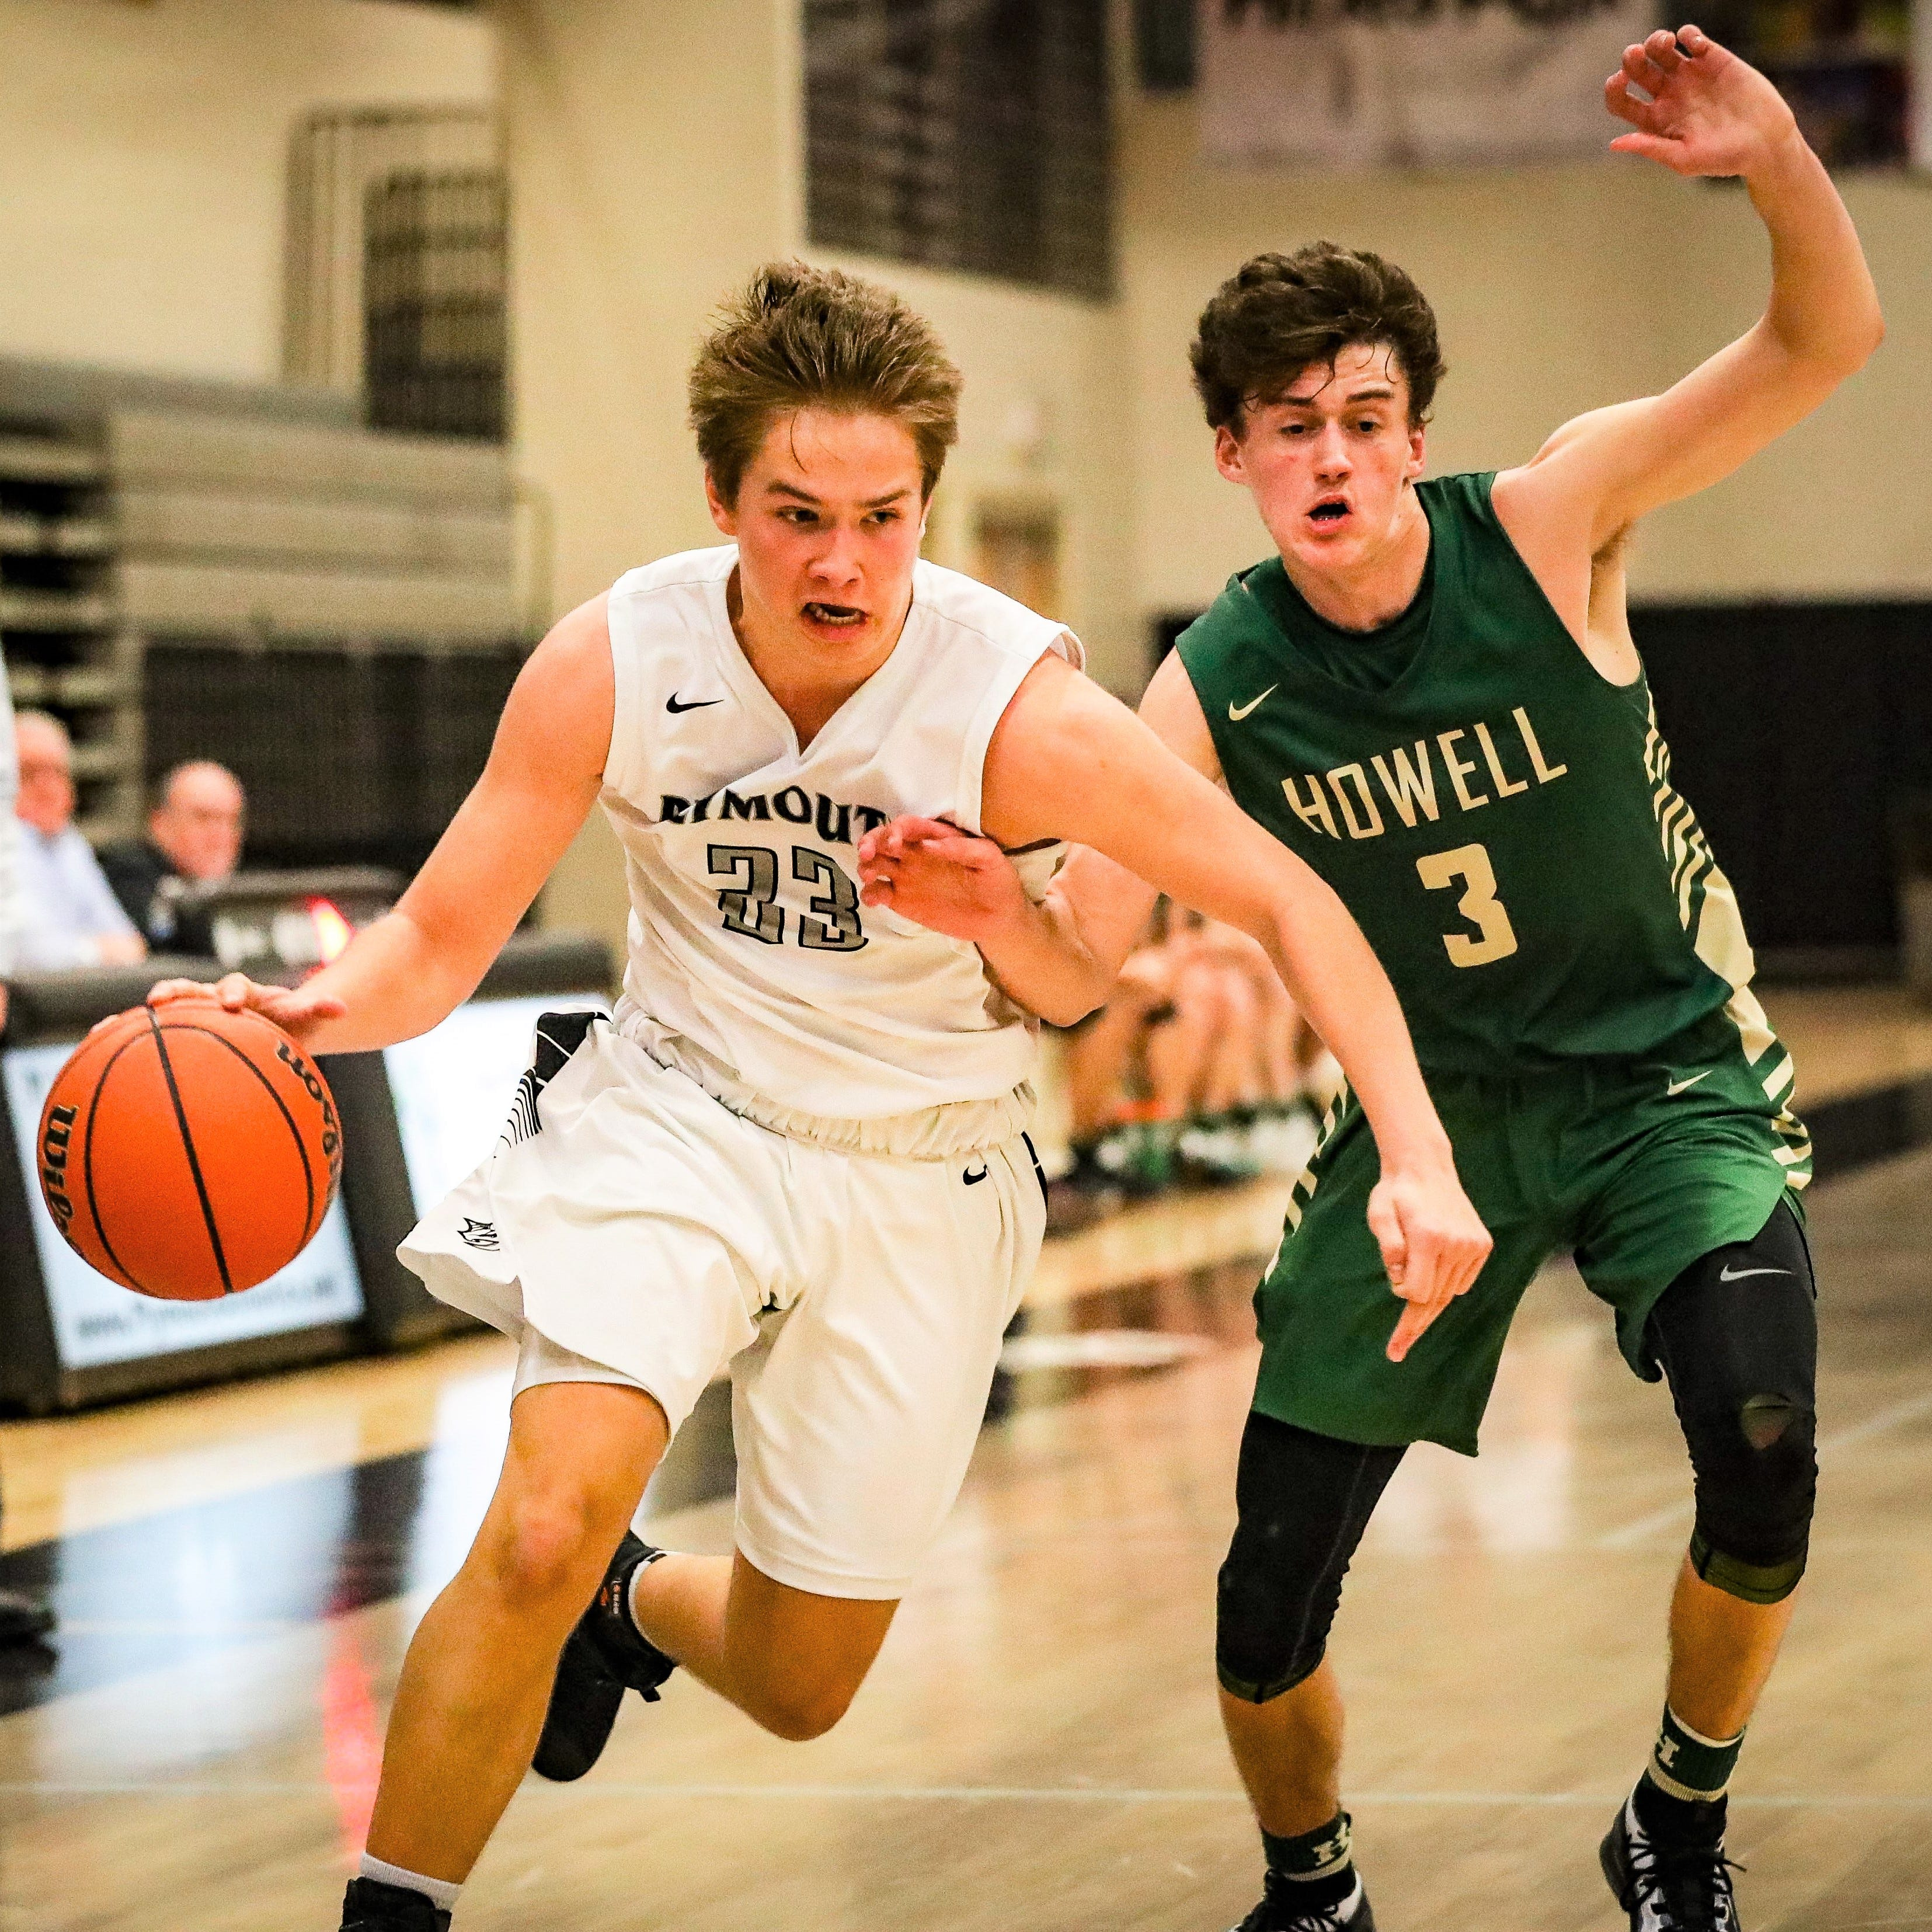 Howell cashes in with late French three-pointer to edge Plymouth